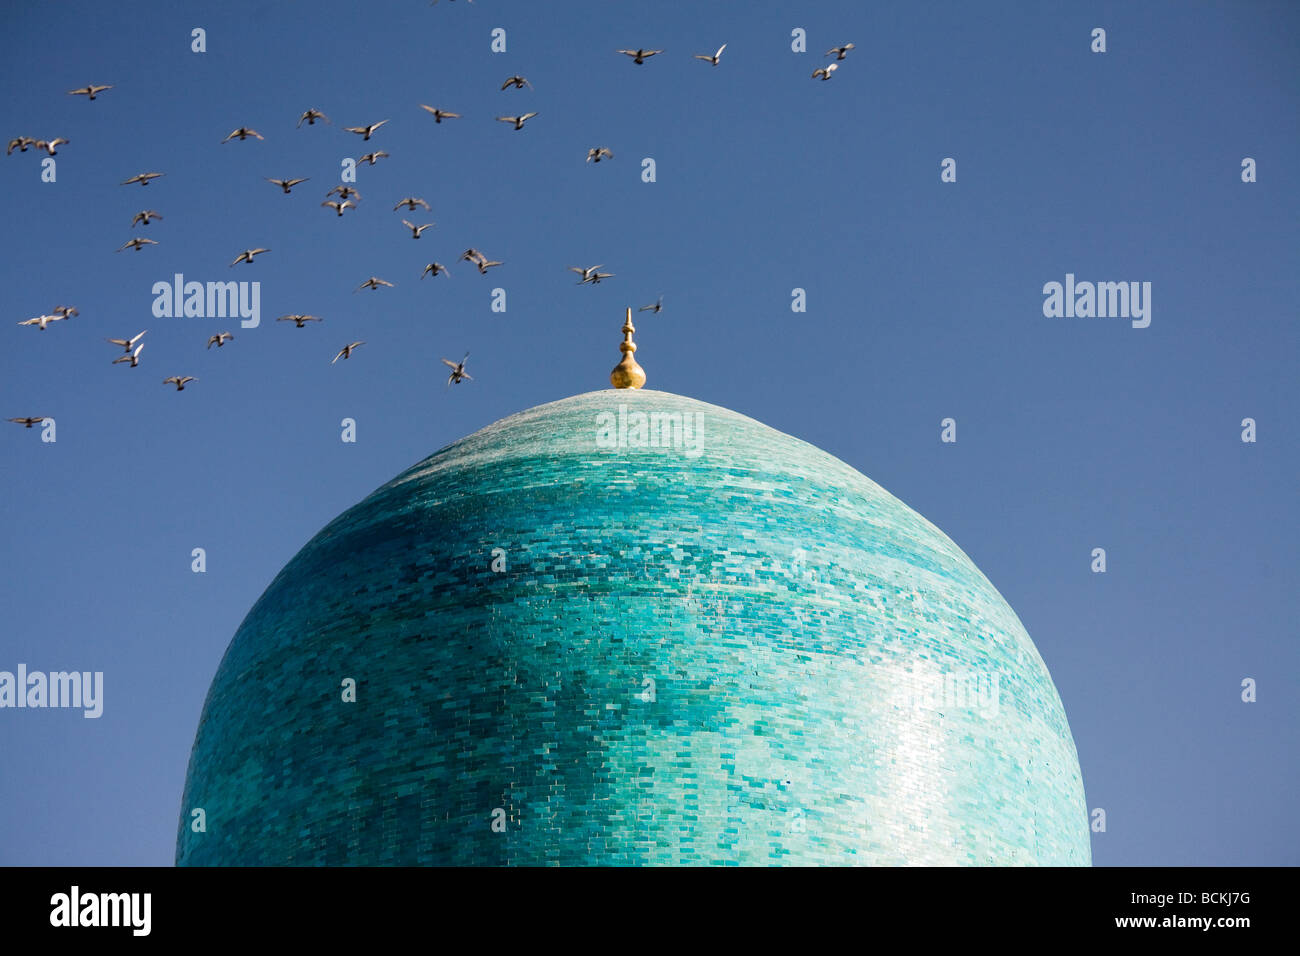 Flock of birds flying over cupola of mosque - Stock Image